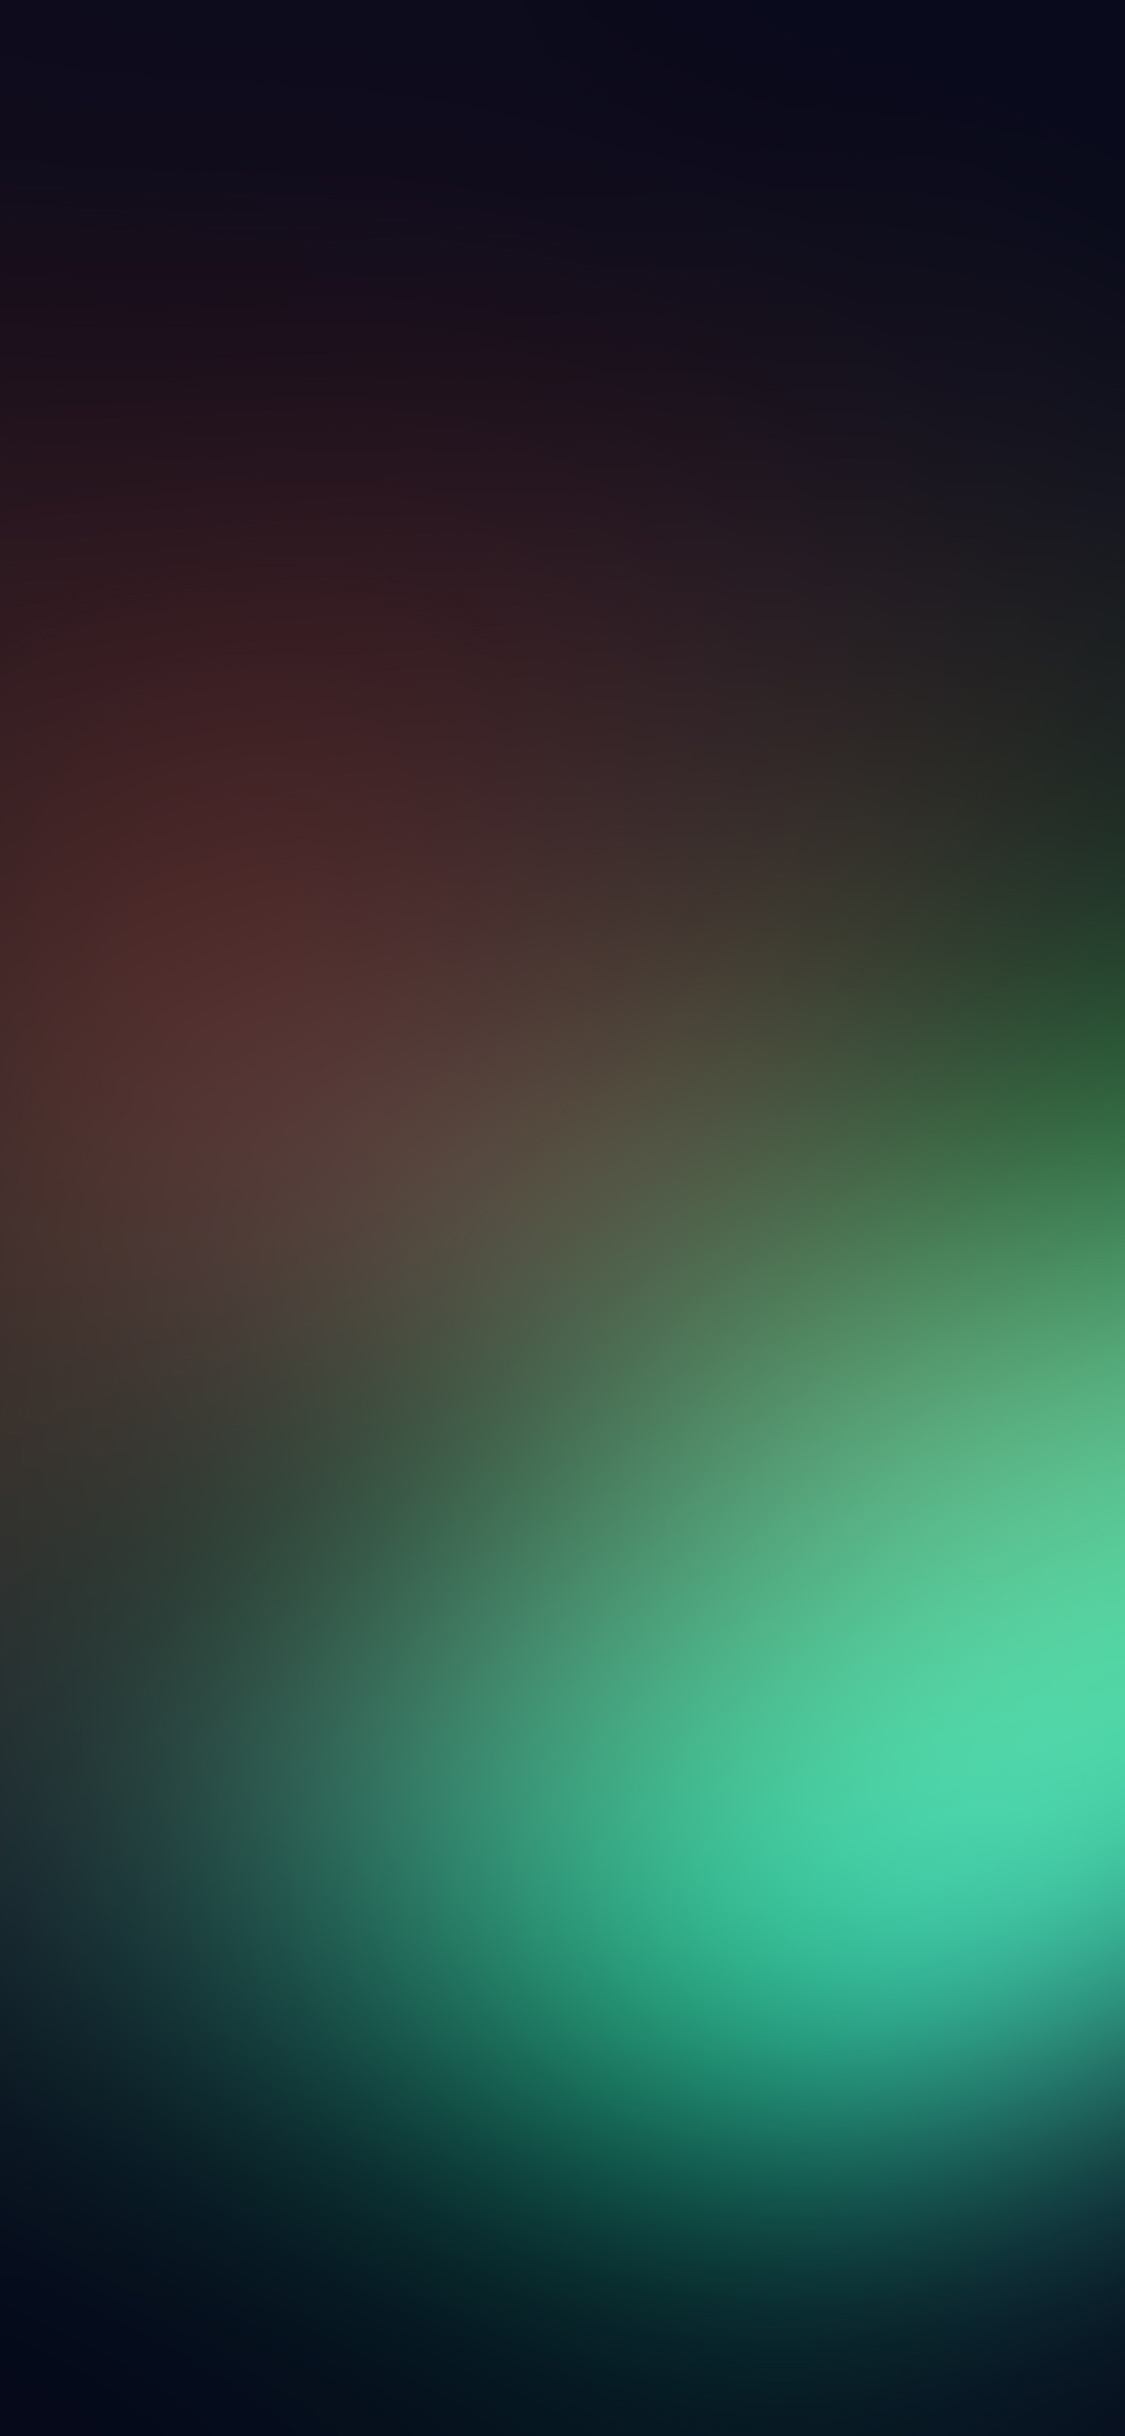 iPhoneXpapers.com-Apple-iPhone-wallpaper-si29-green-red-fight-hana-comeback-gradation-blur